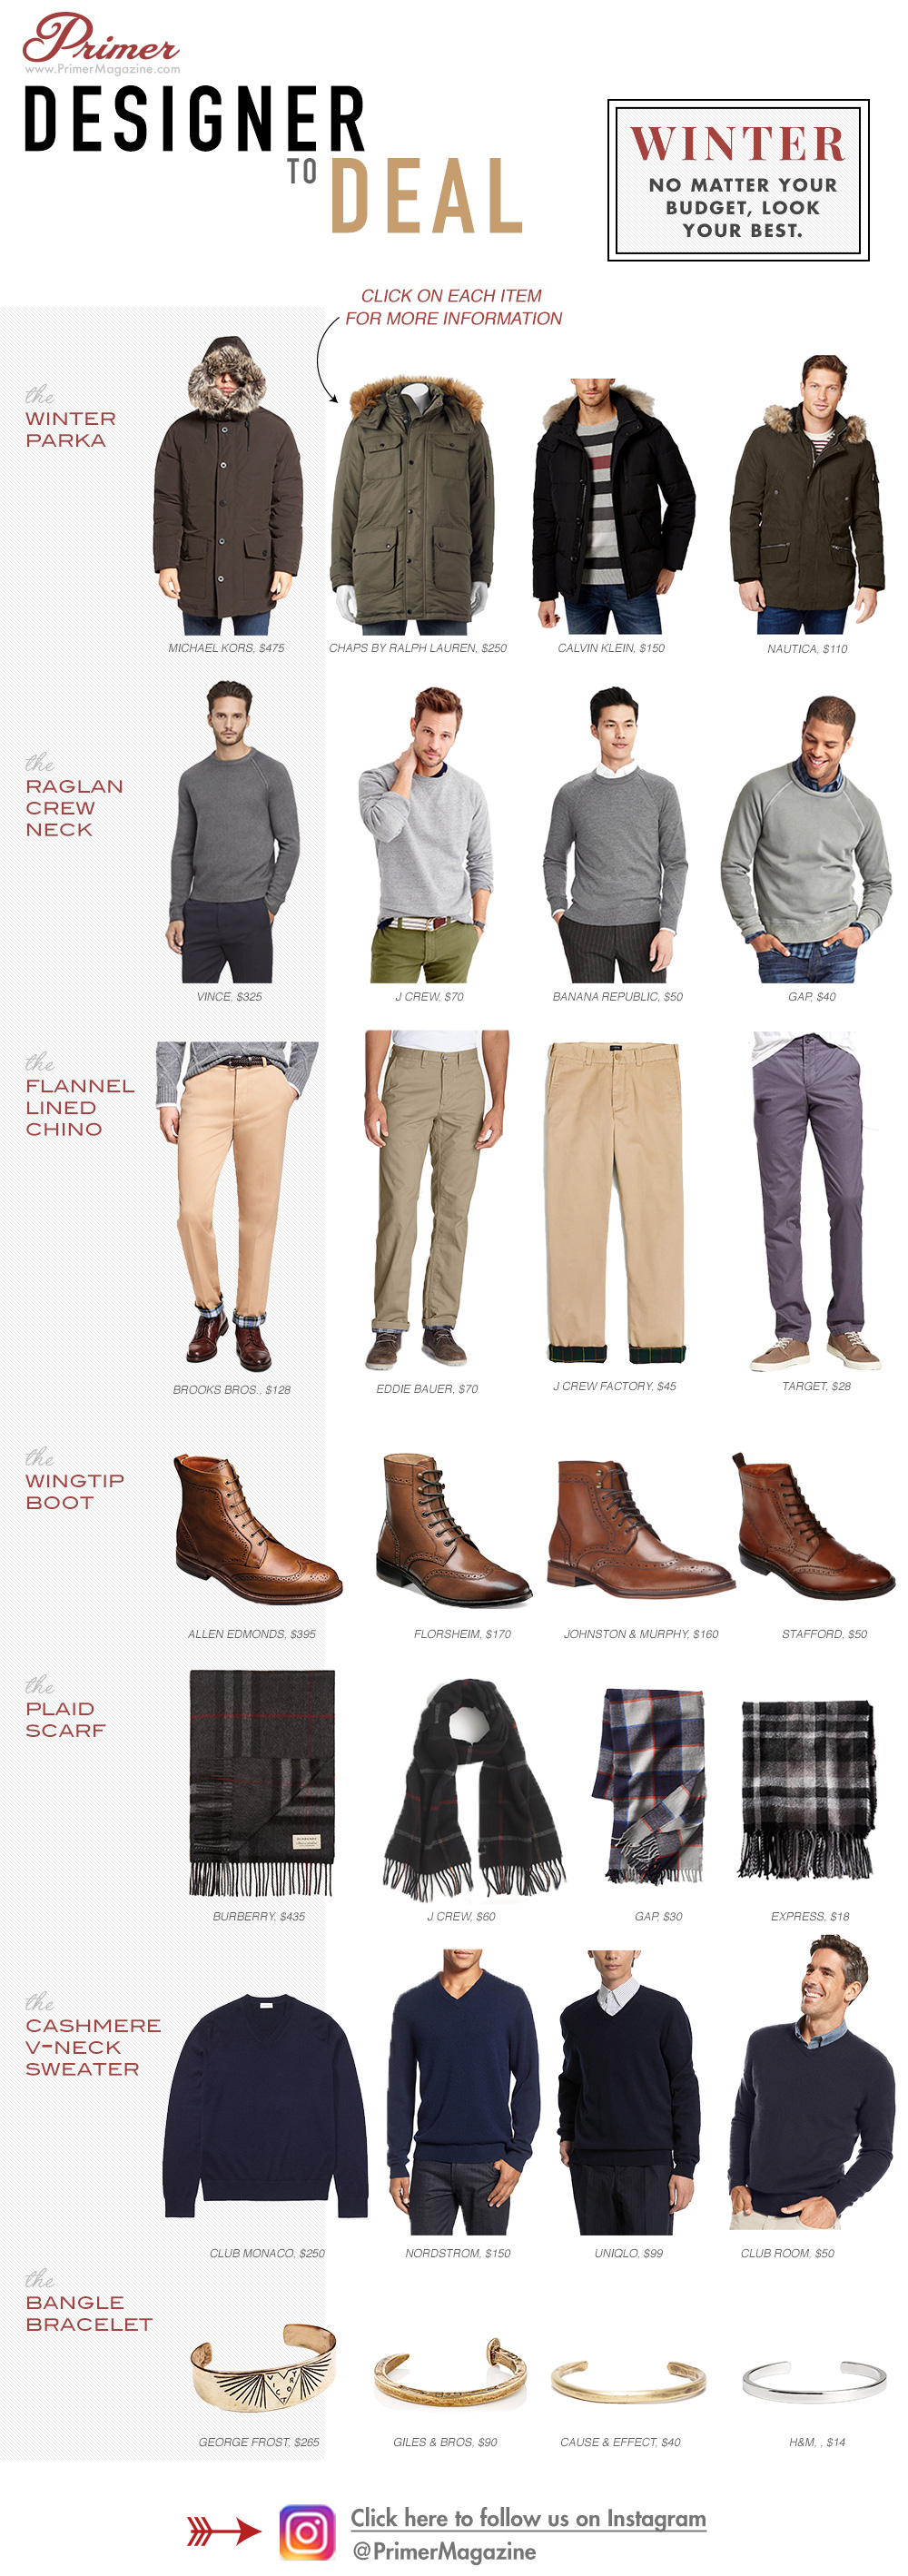 Designer to Deal winter - options for sweaters, pants, boots, scarves